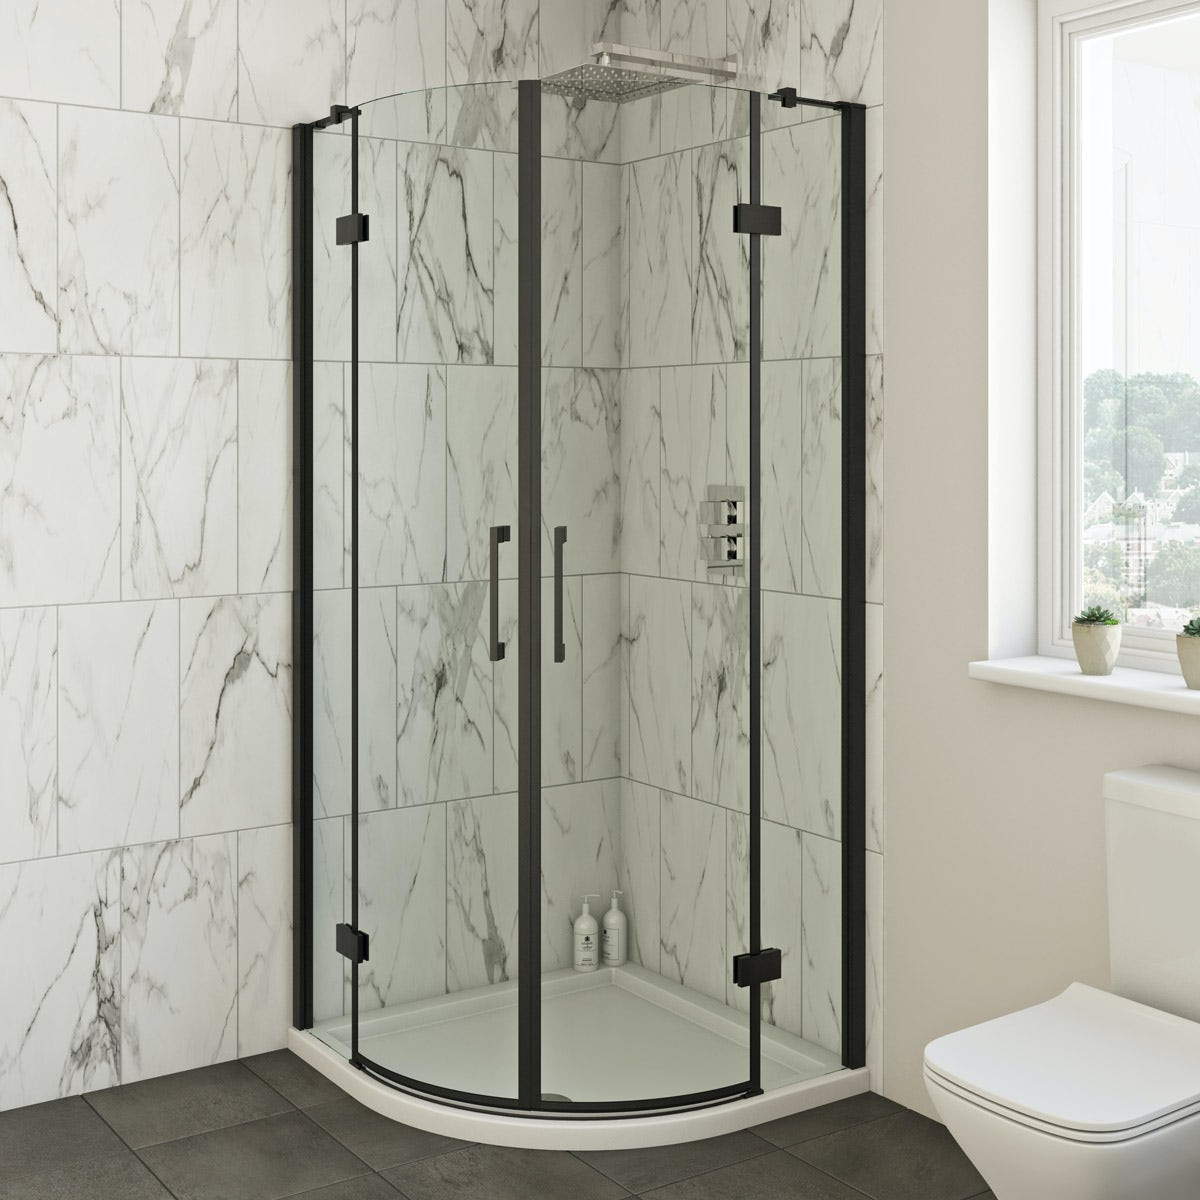 Mode Cooper black hinged quadrant shower enclosure 900 x 900